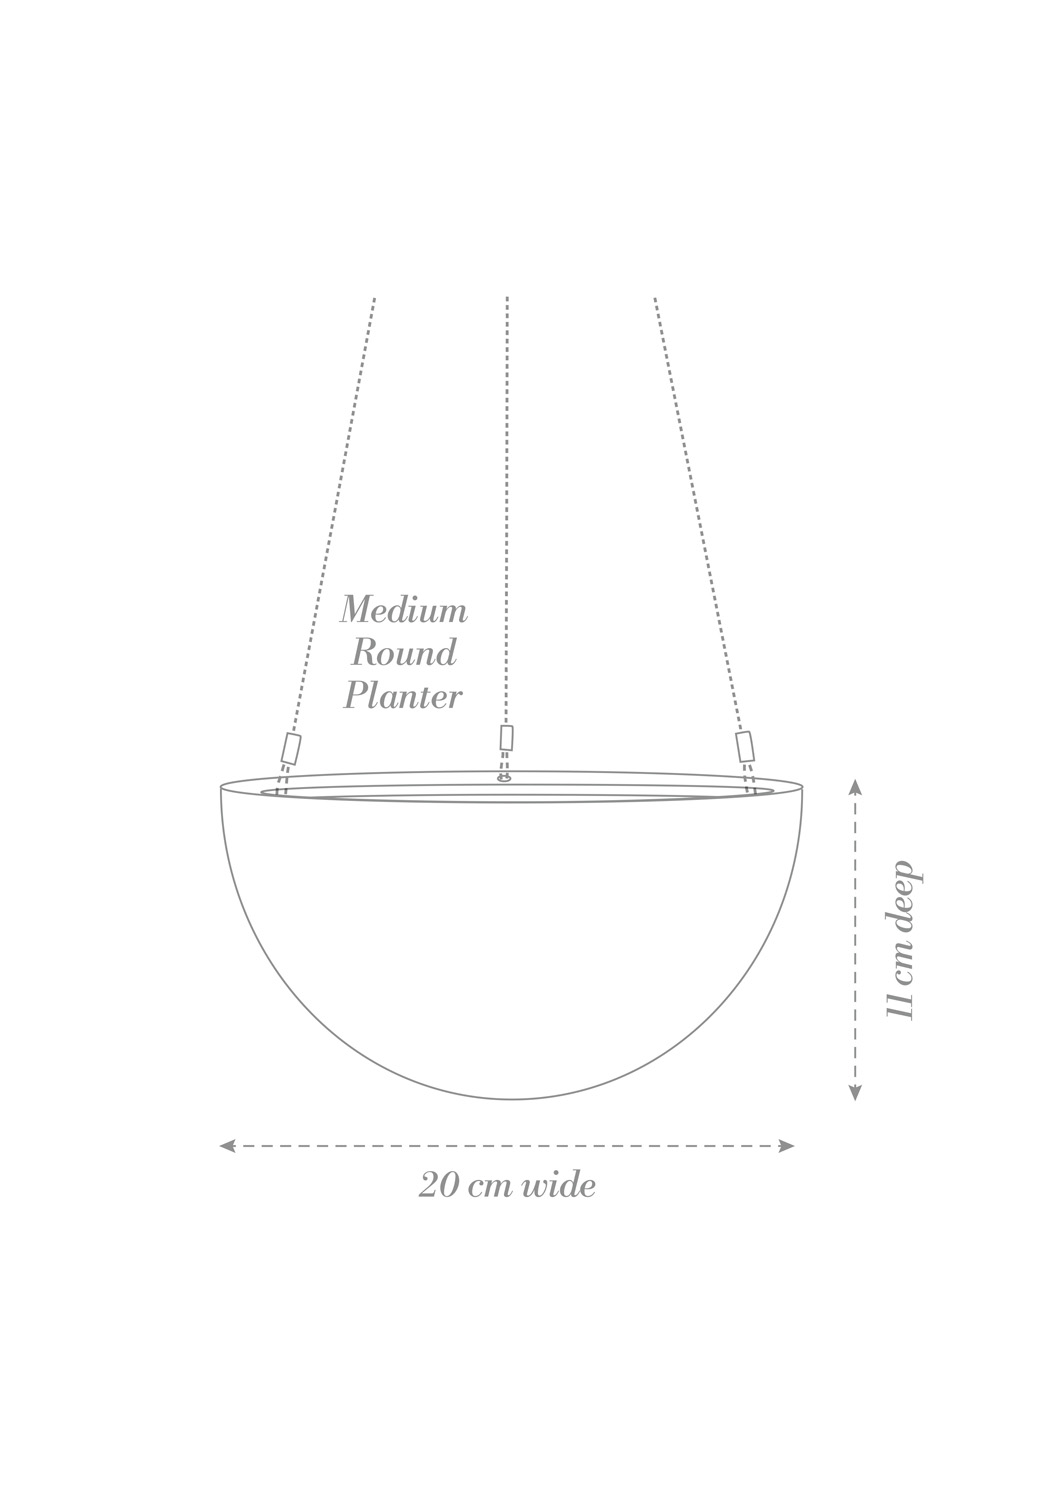 Hanging Planter Medium Product Diagram